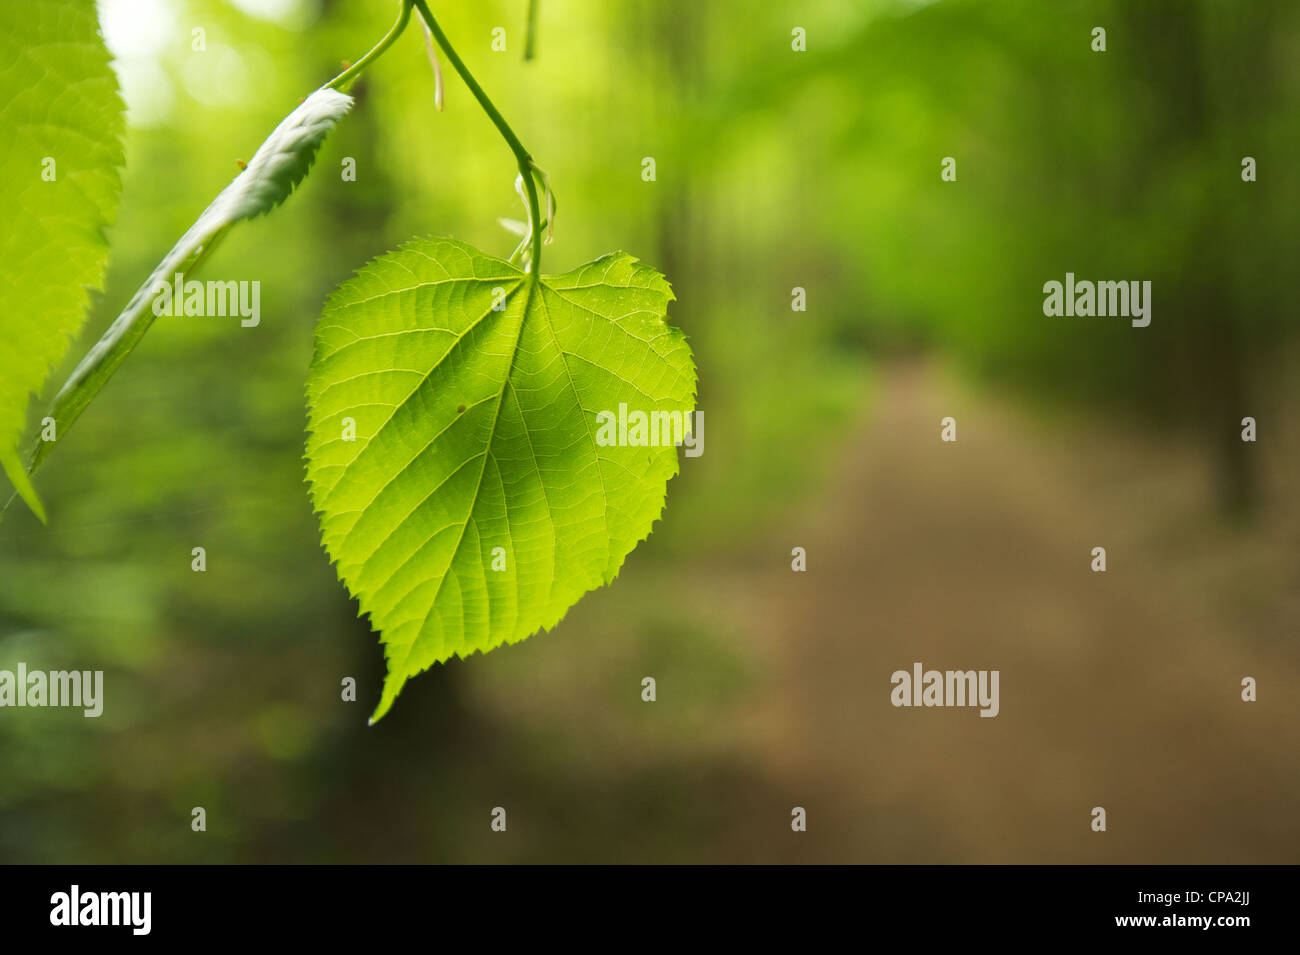 Sommerlinde - Tilia platyphyllos Leaf of a Large-leaved Linden or lime tree Stock Photo